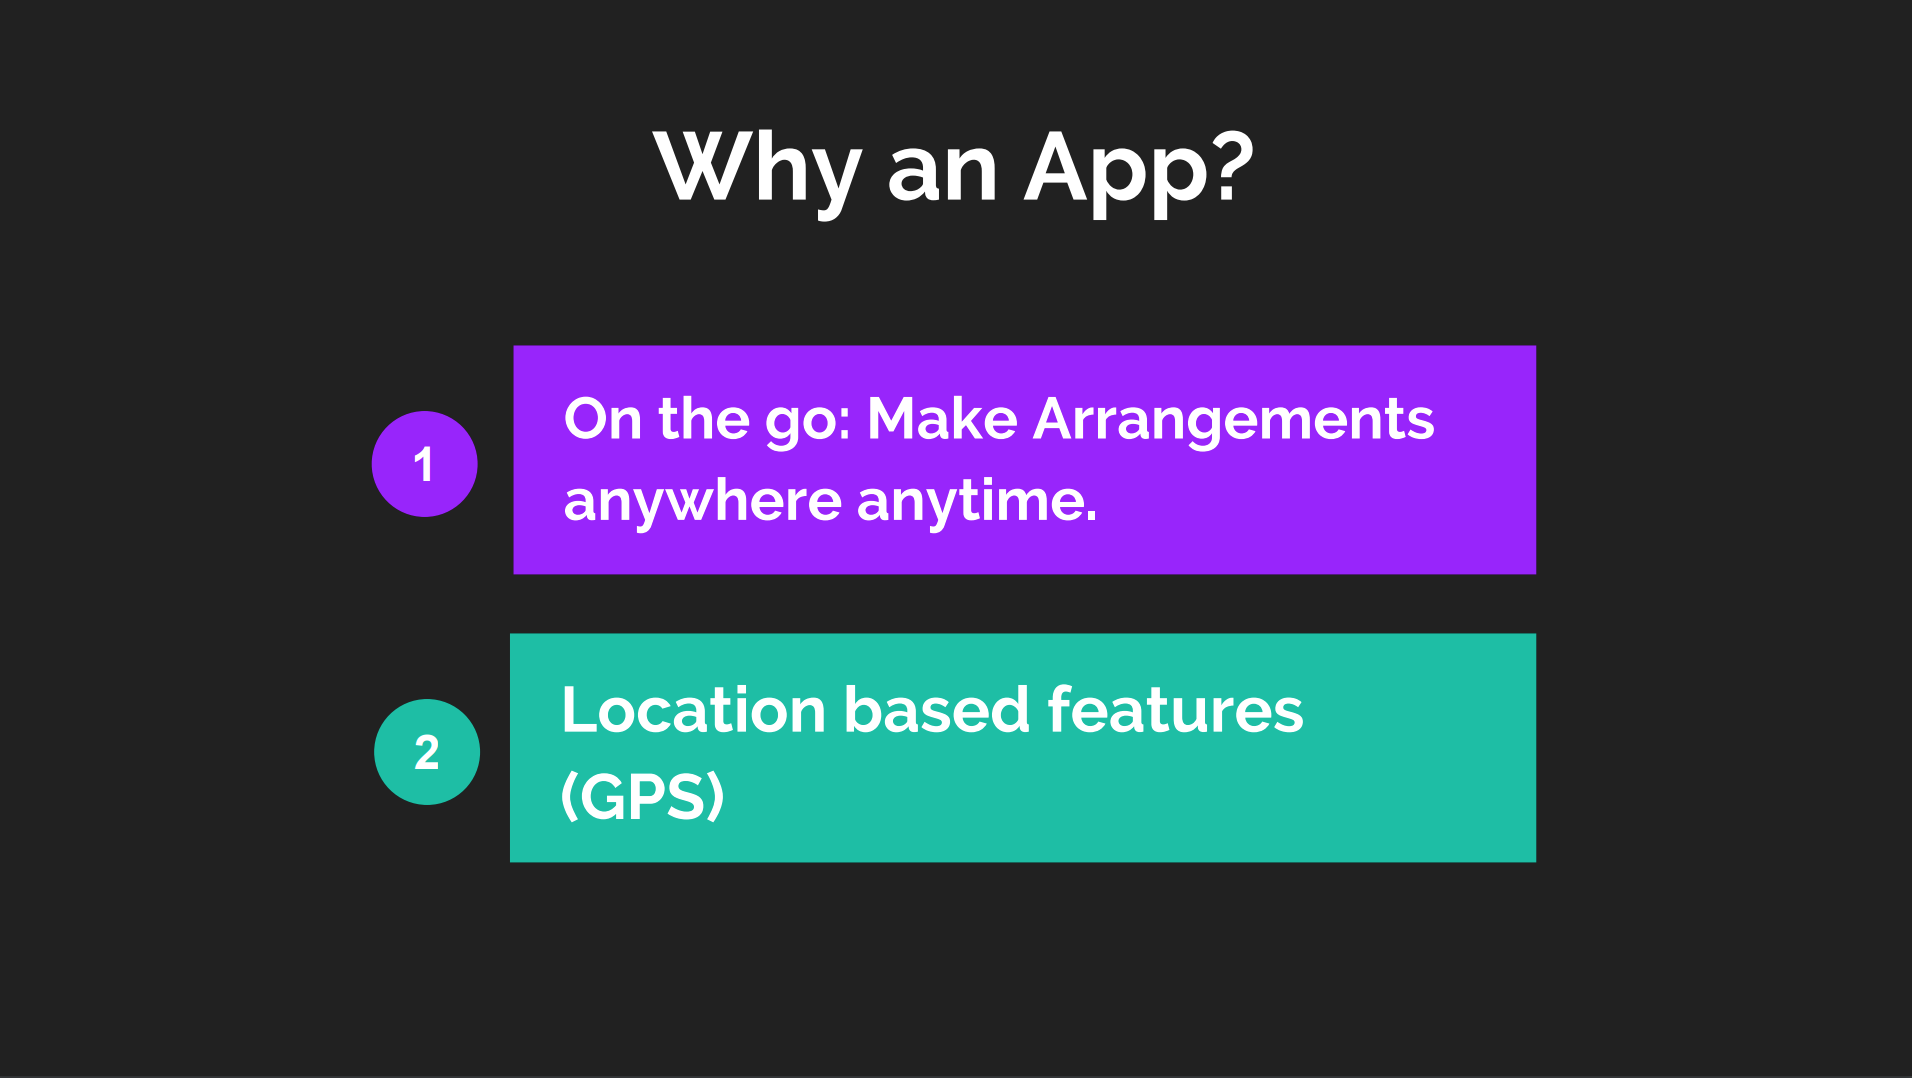 Considerations for the design of an app.